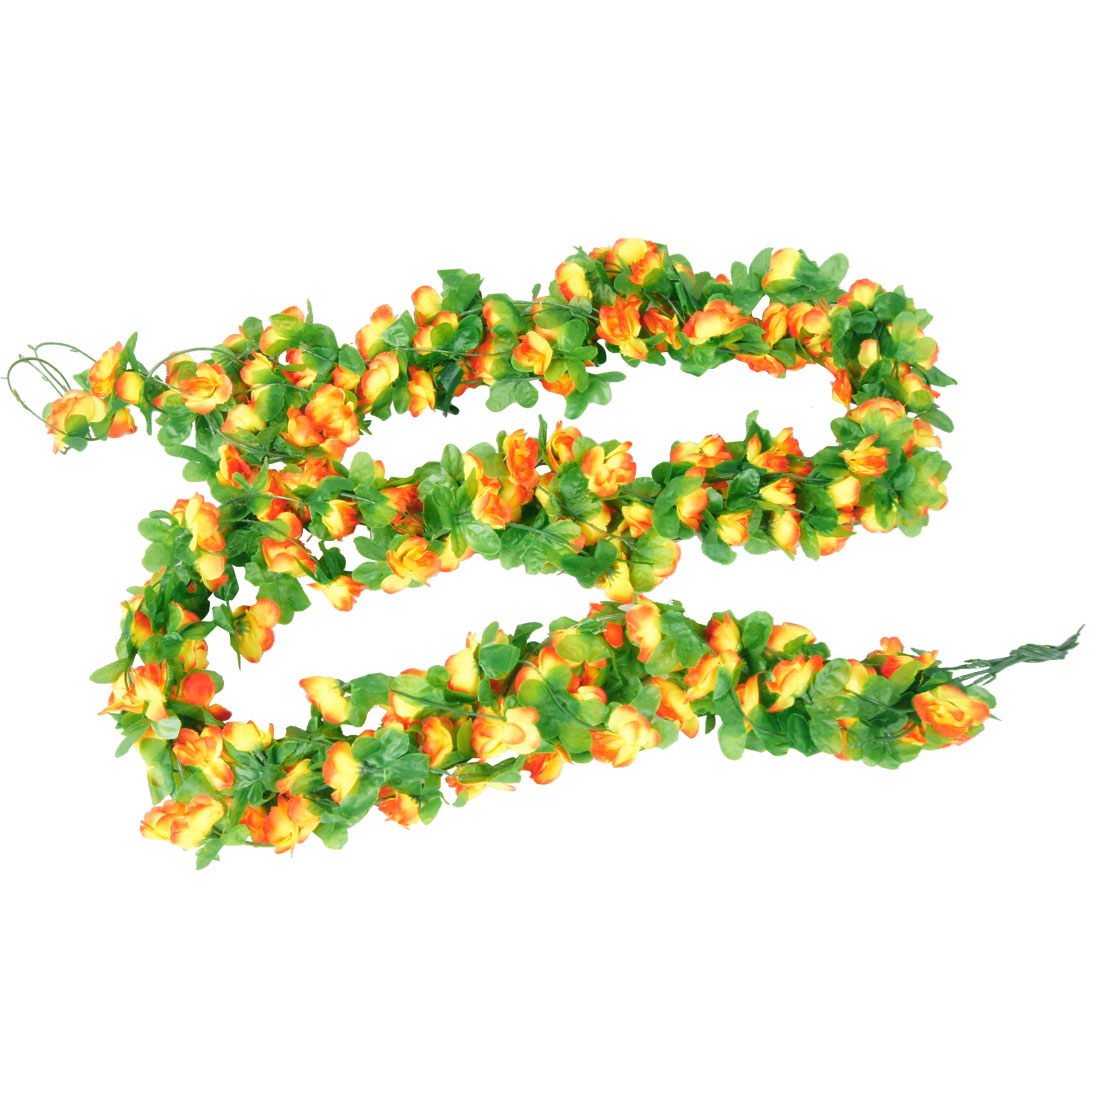 2.2M Length Simulation Ornament Fabric Flower Ivy Yellow Orange 5 Pcs